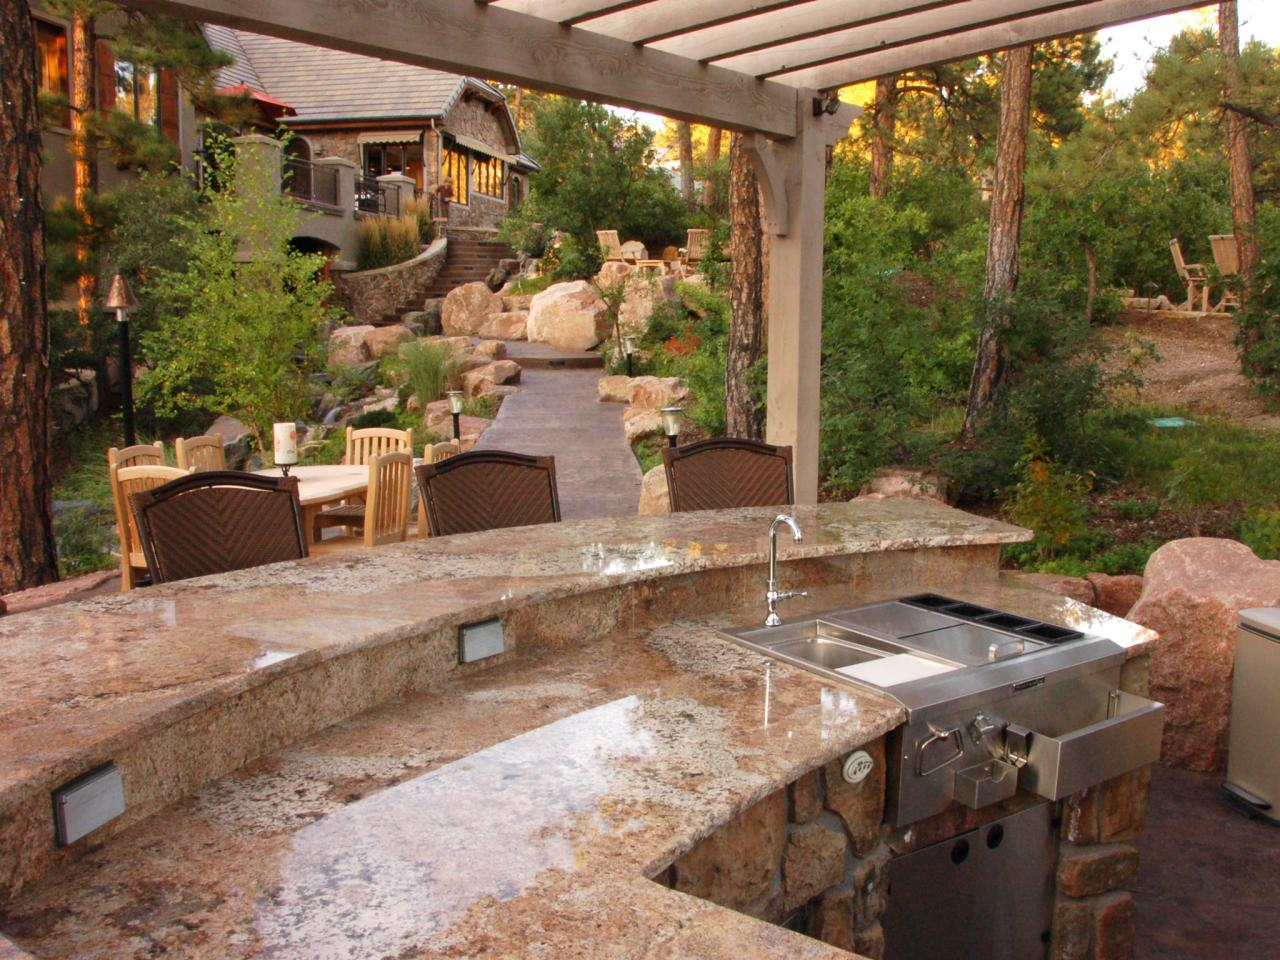 A perfect outdoor kitchen ideas